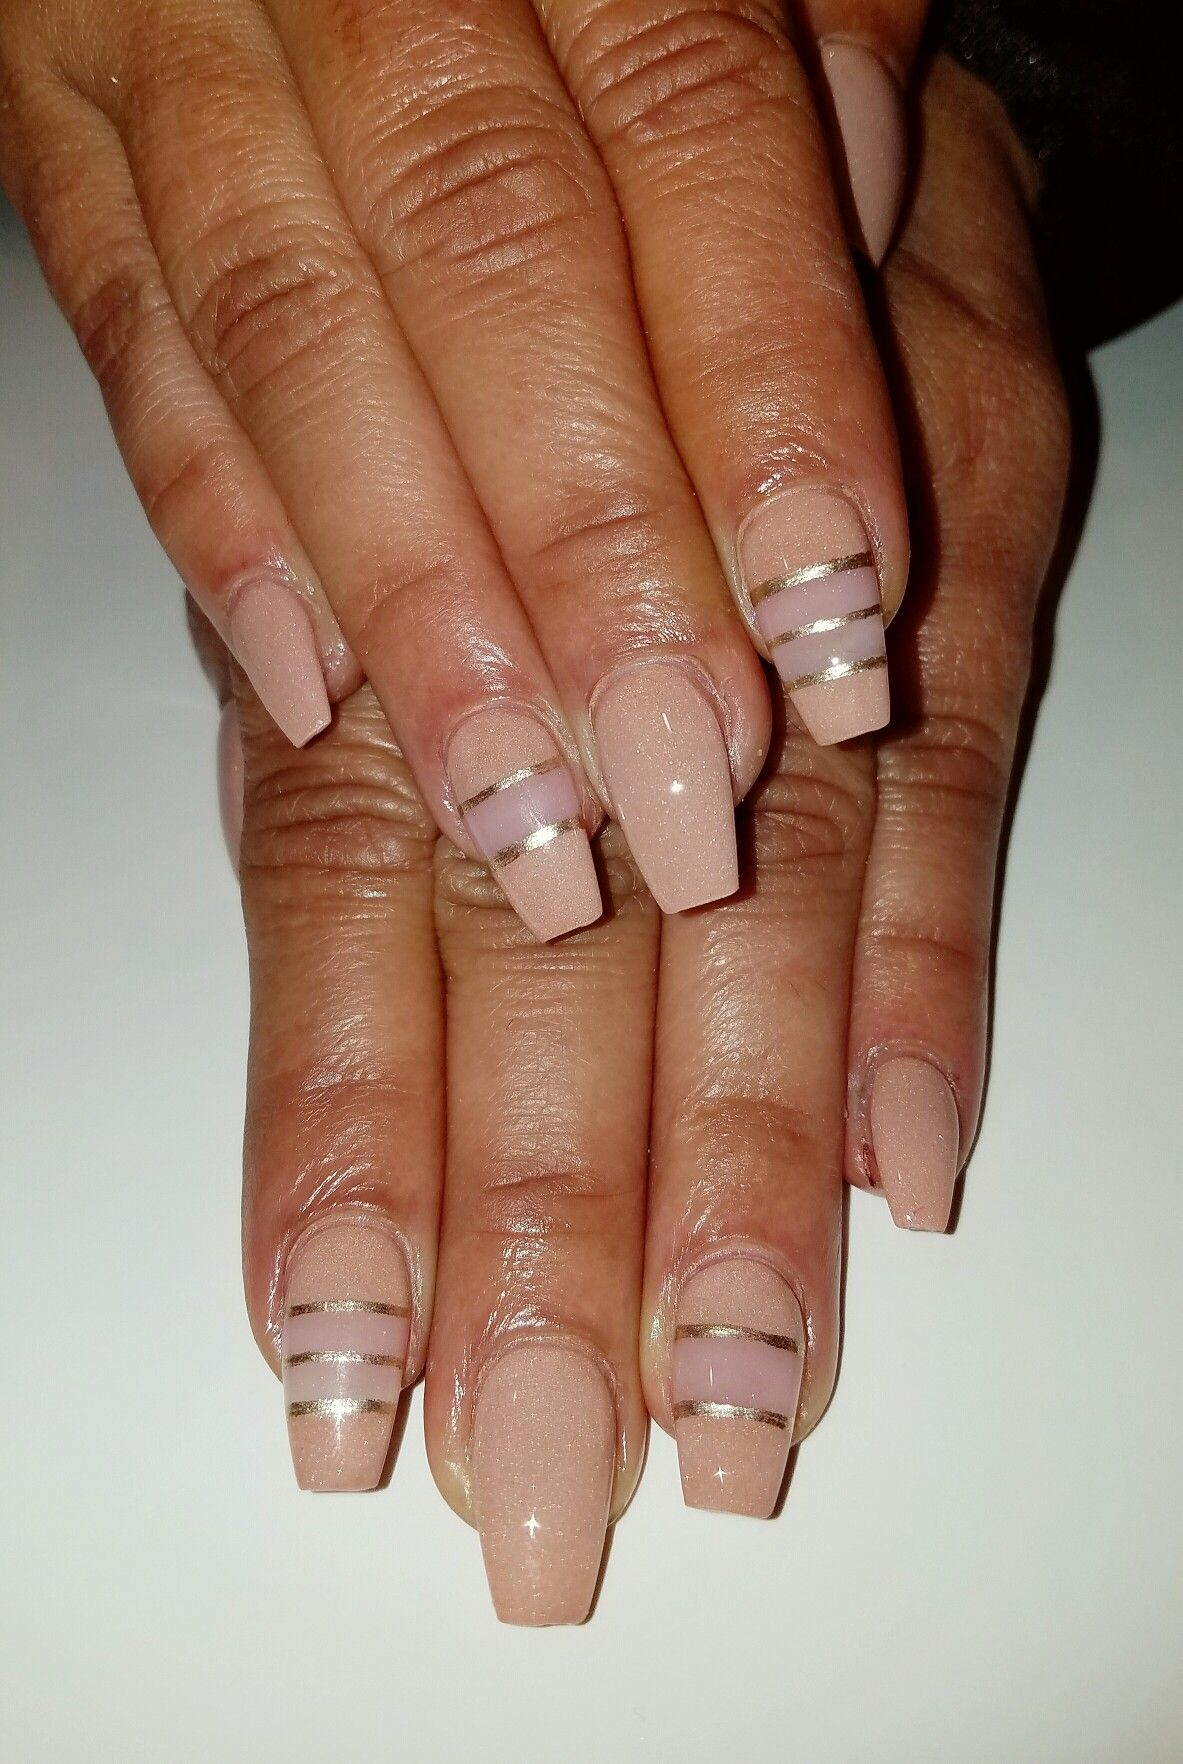 Flirtatious Nails In 2019: Nude And Negative Space Short Coffin Nails